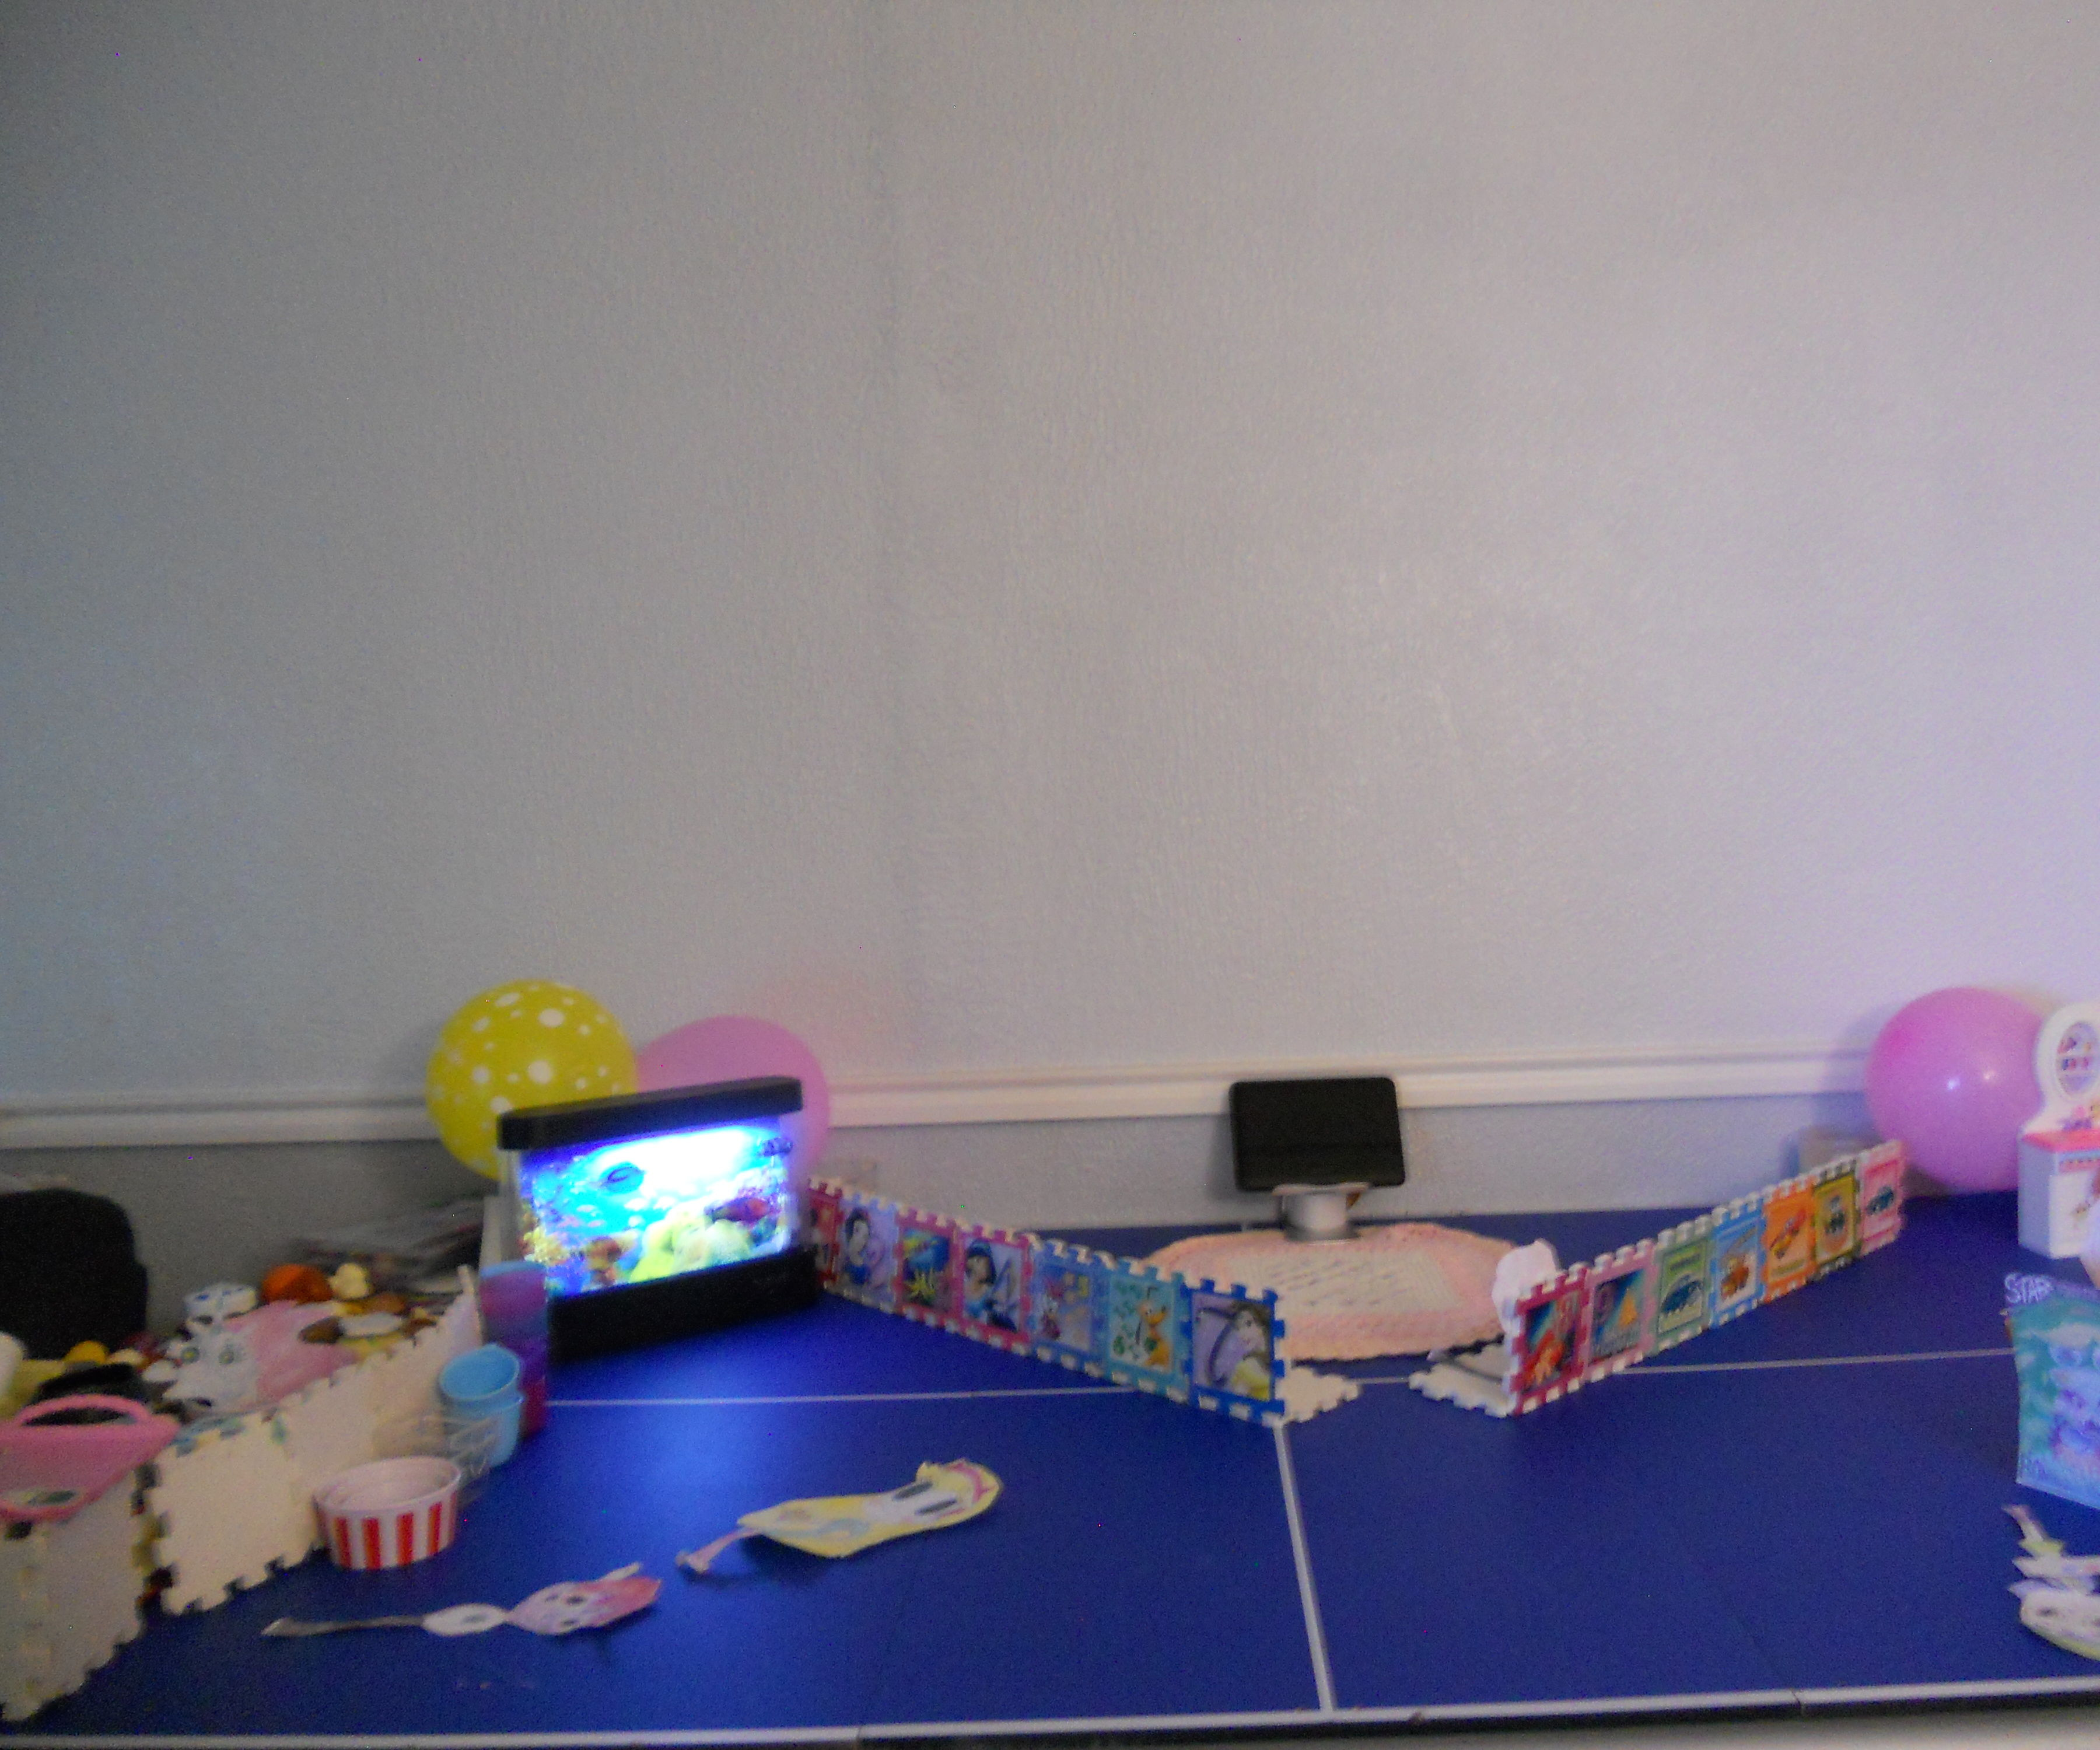 How to make a movie theater for toys!